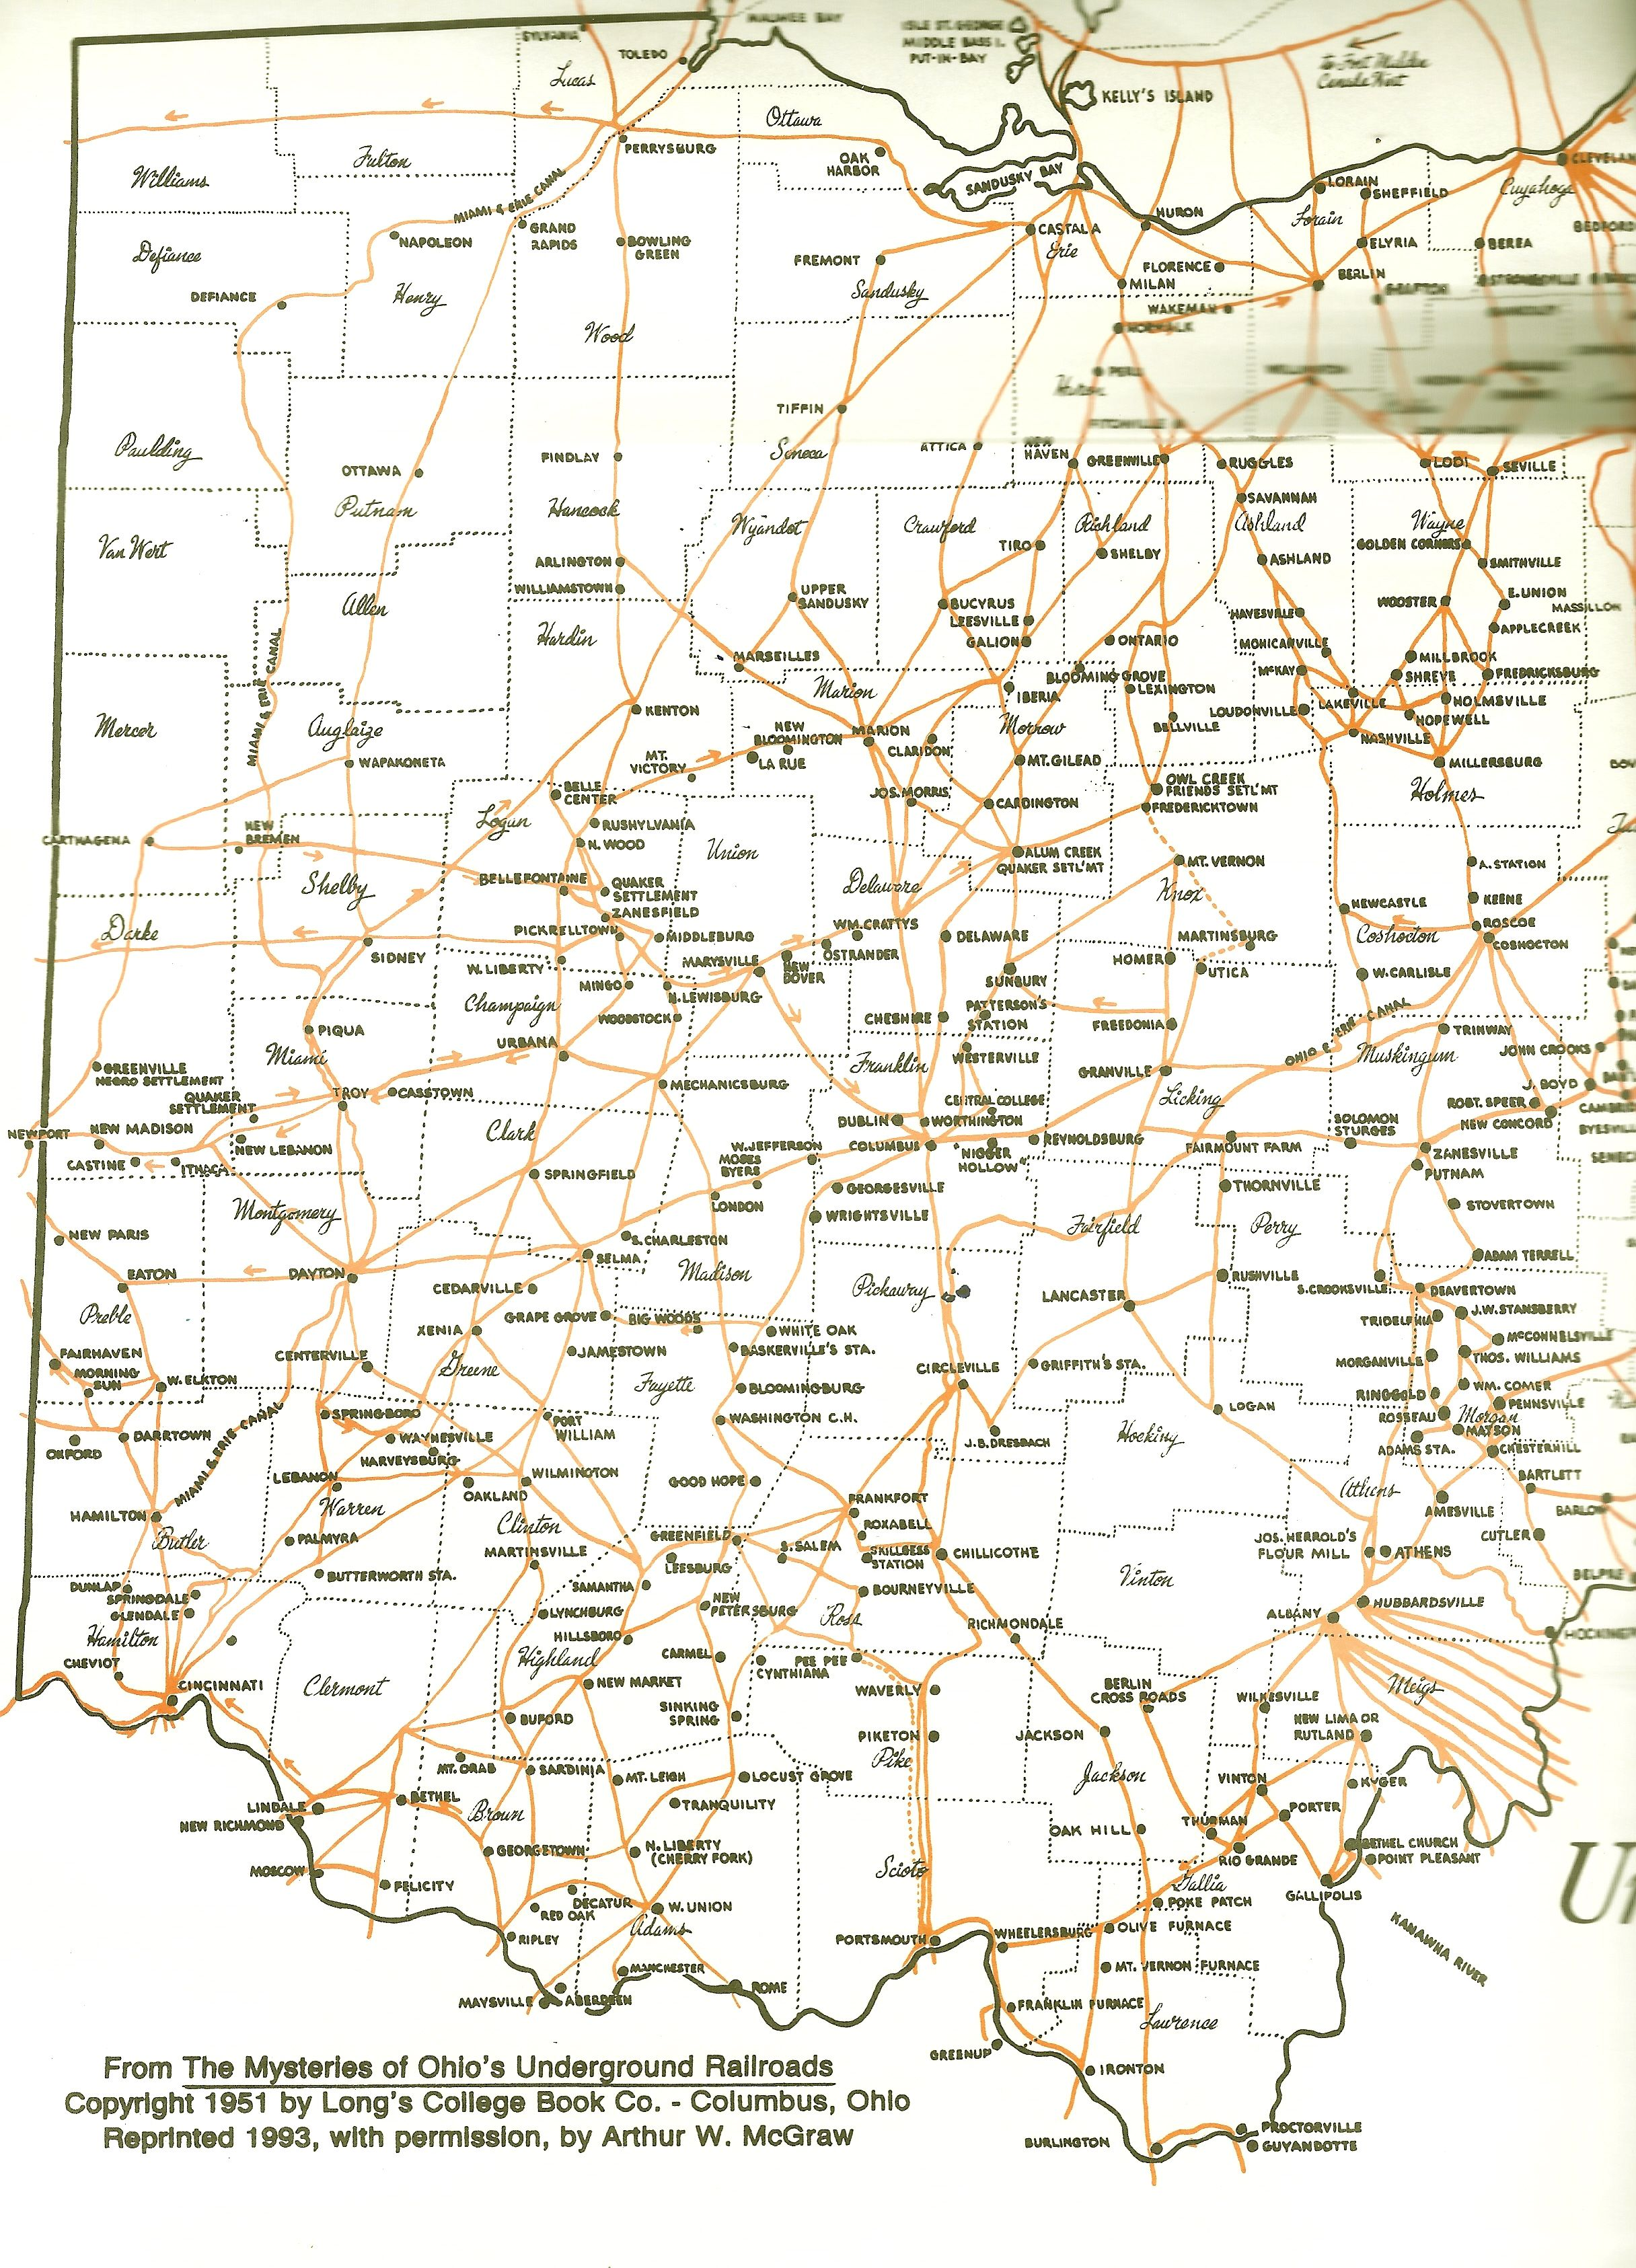 Underground Railroad Map Based On Research By William